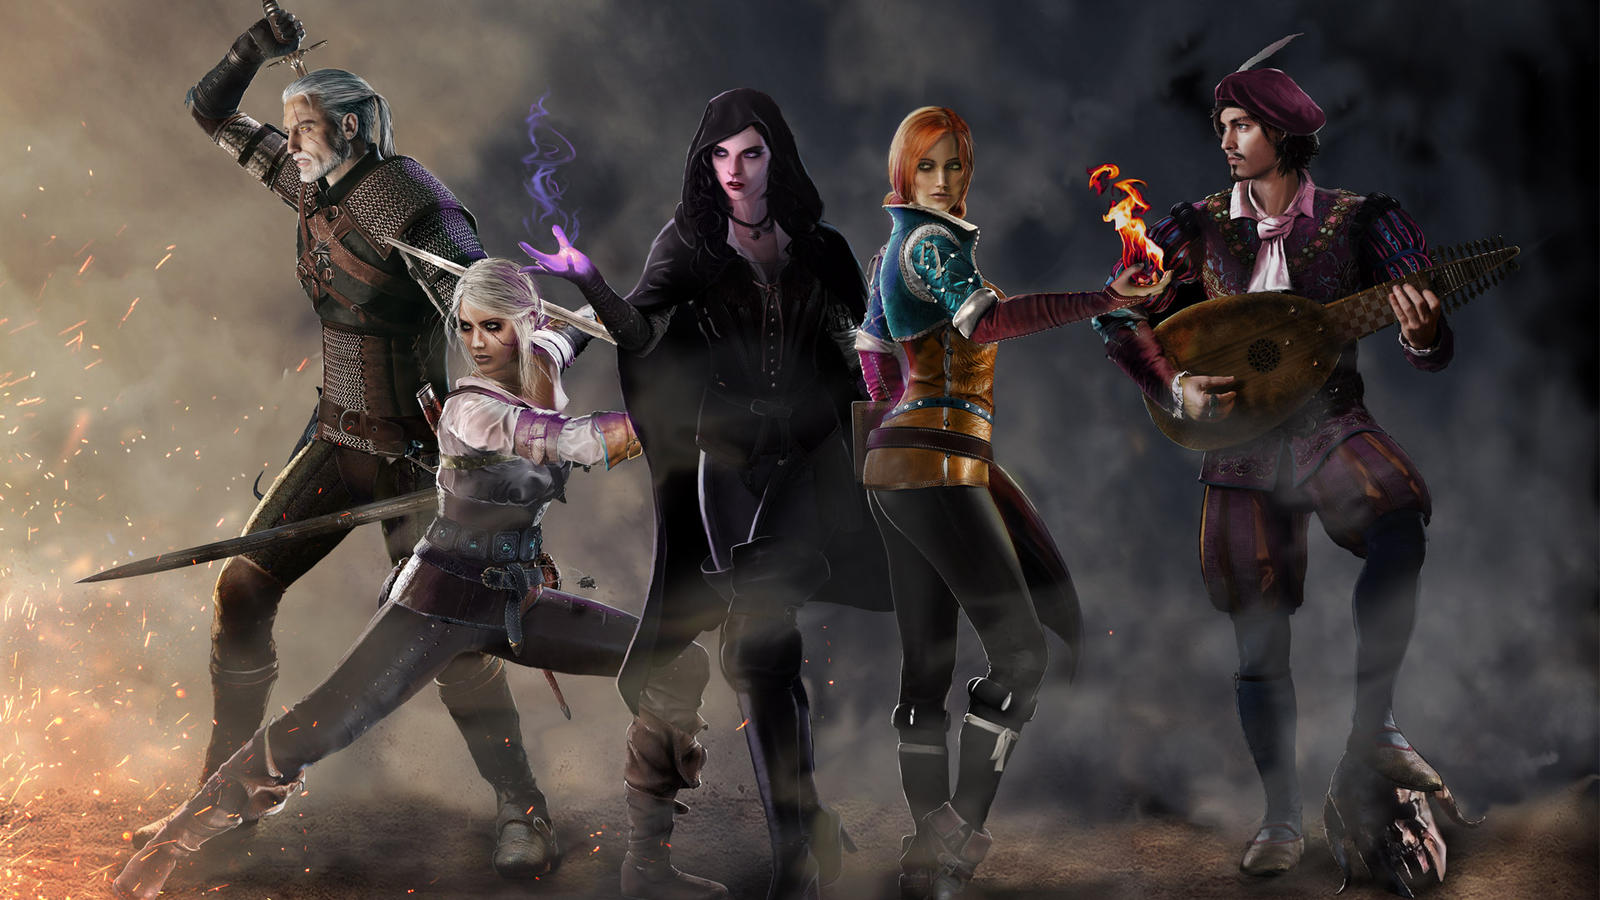 Getting the Band Back Together - Witcher 3 by Shinobi2u